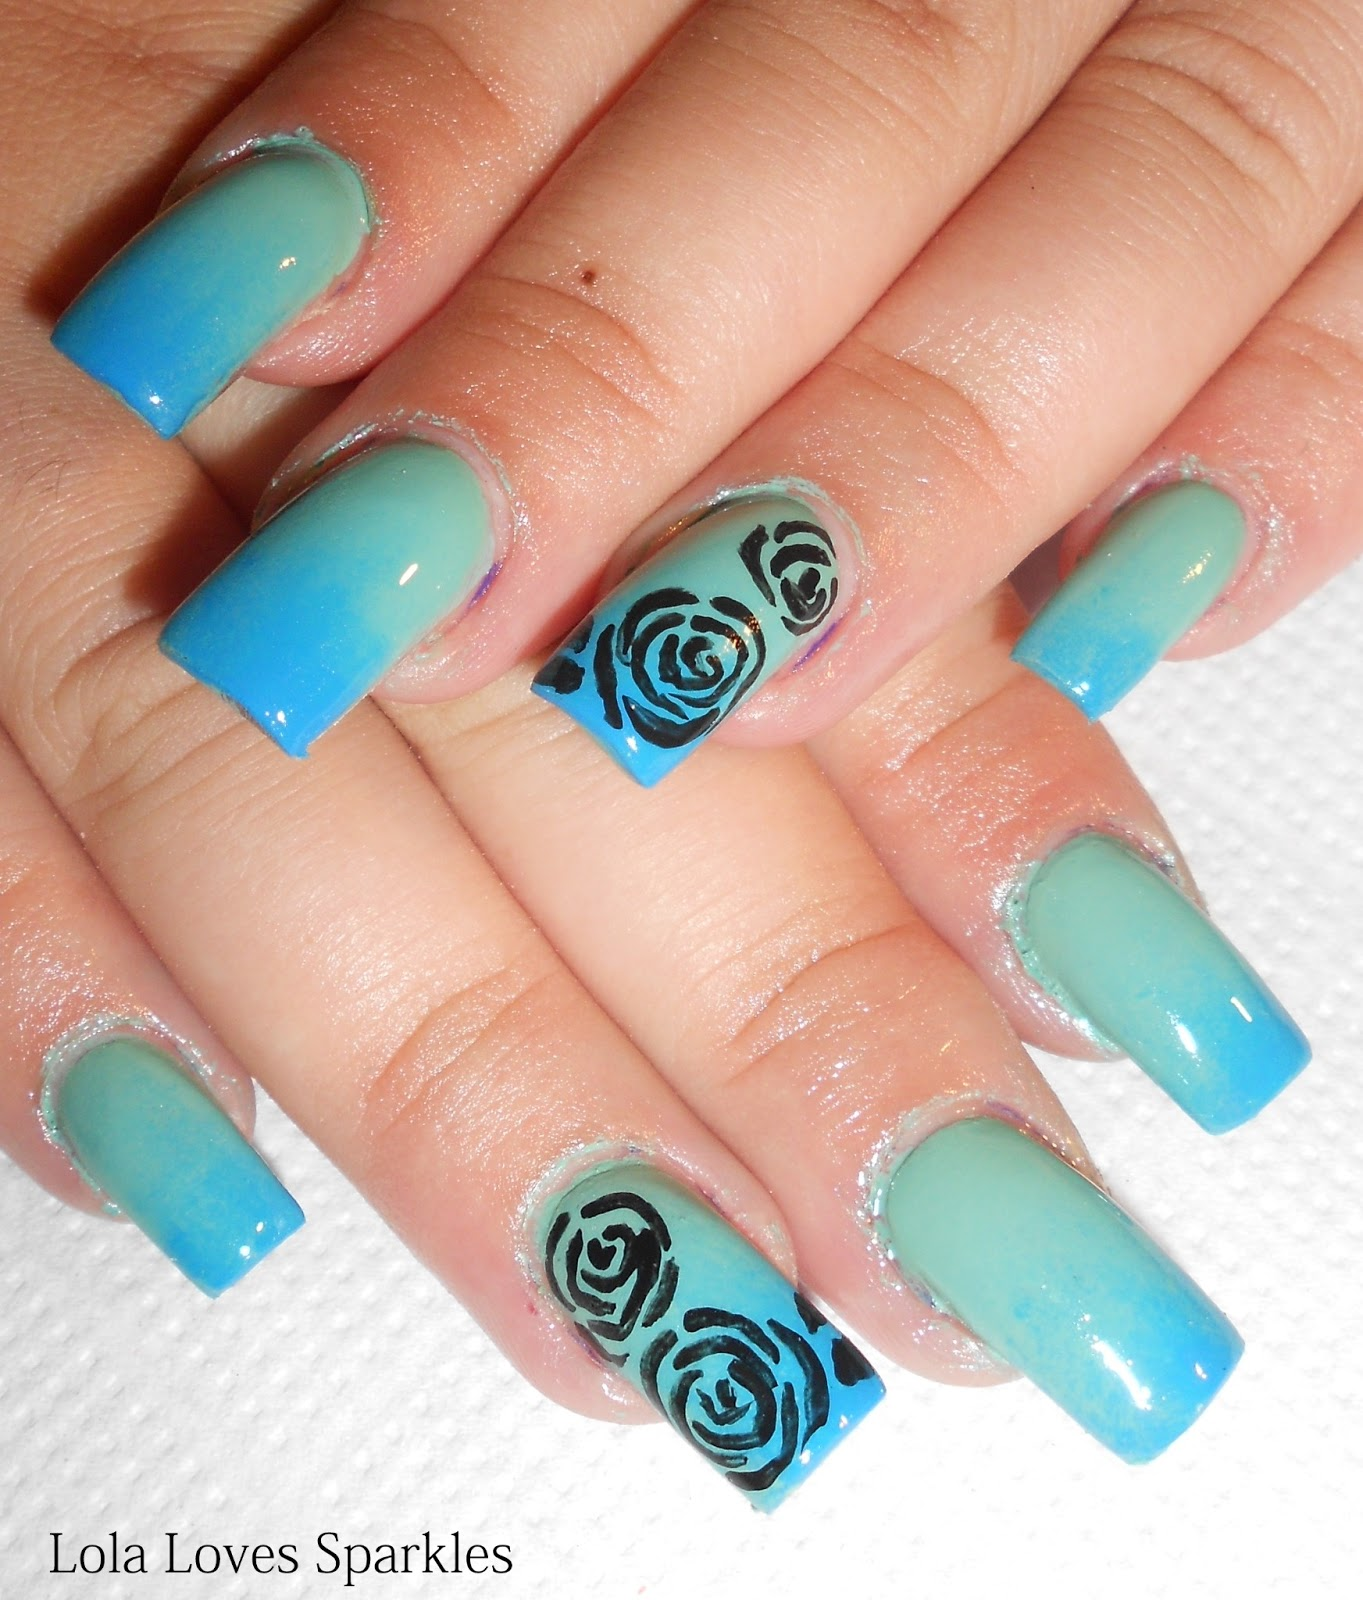 Lola Loves Sparkles: Ombre Gradient Nail Art with Roses [Step-by ...